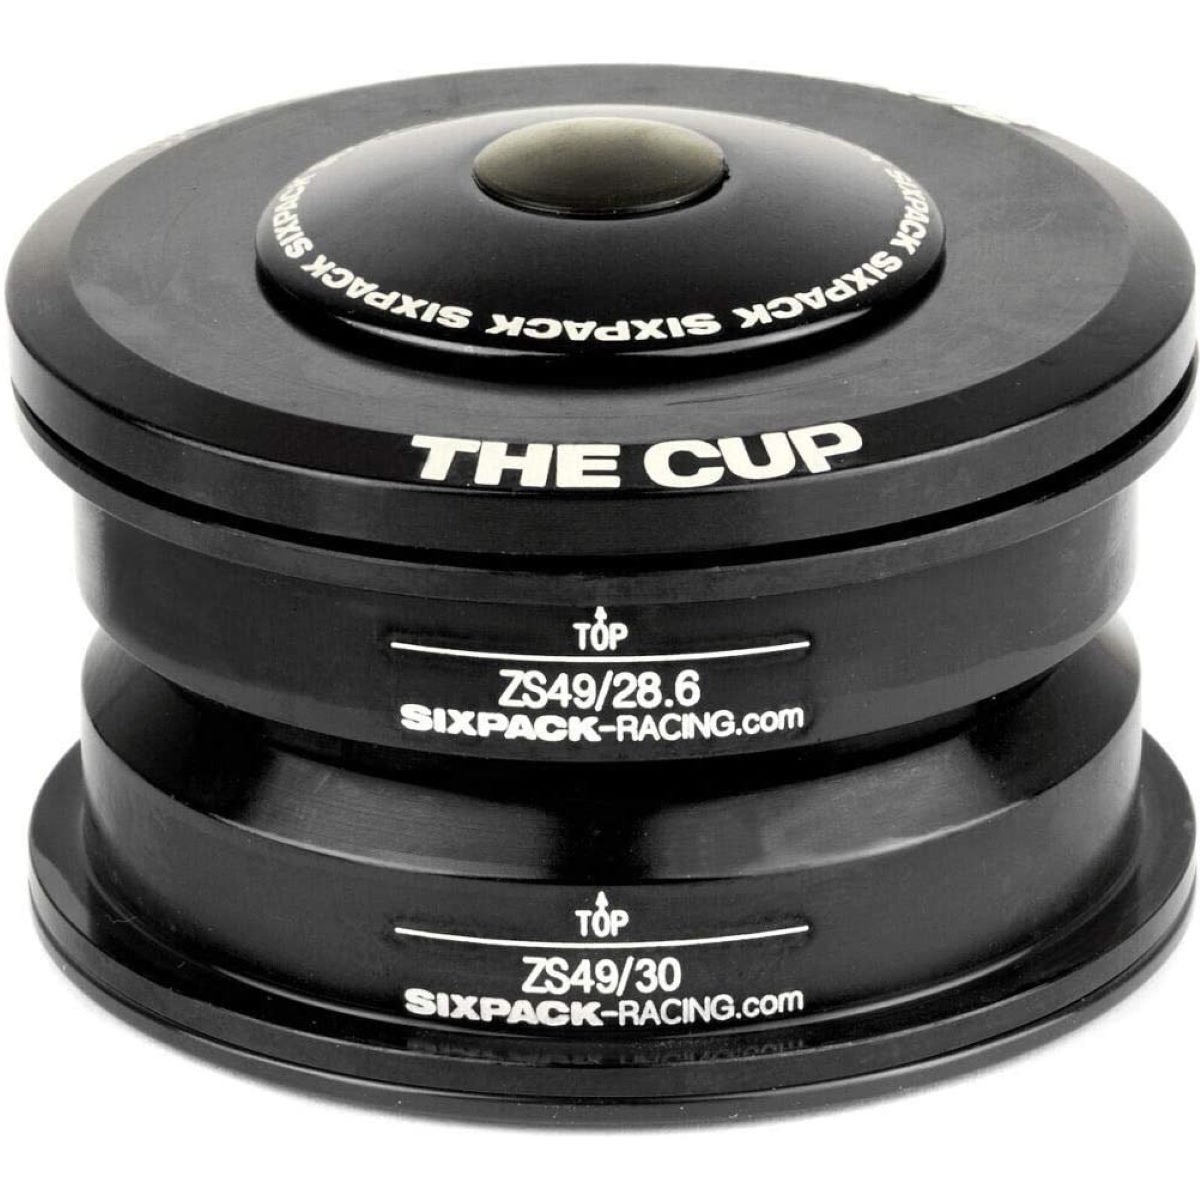 Sixpack Racing The Cup Headset Headsets